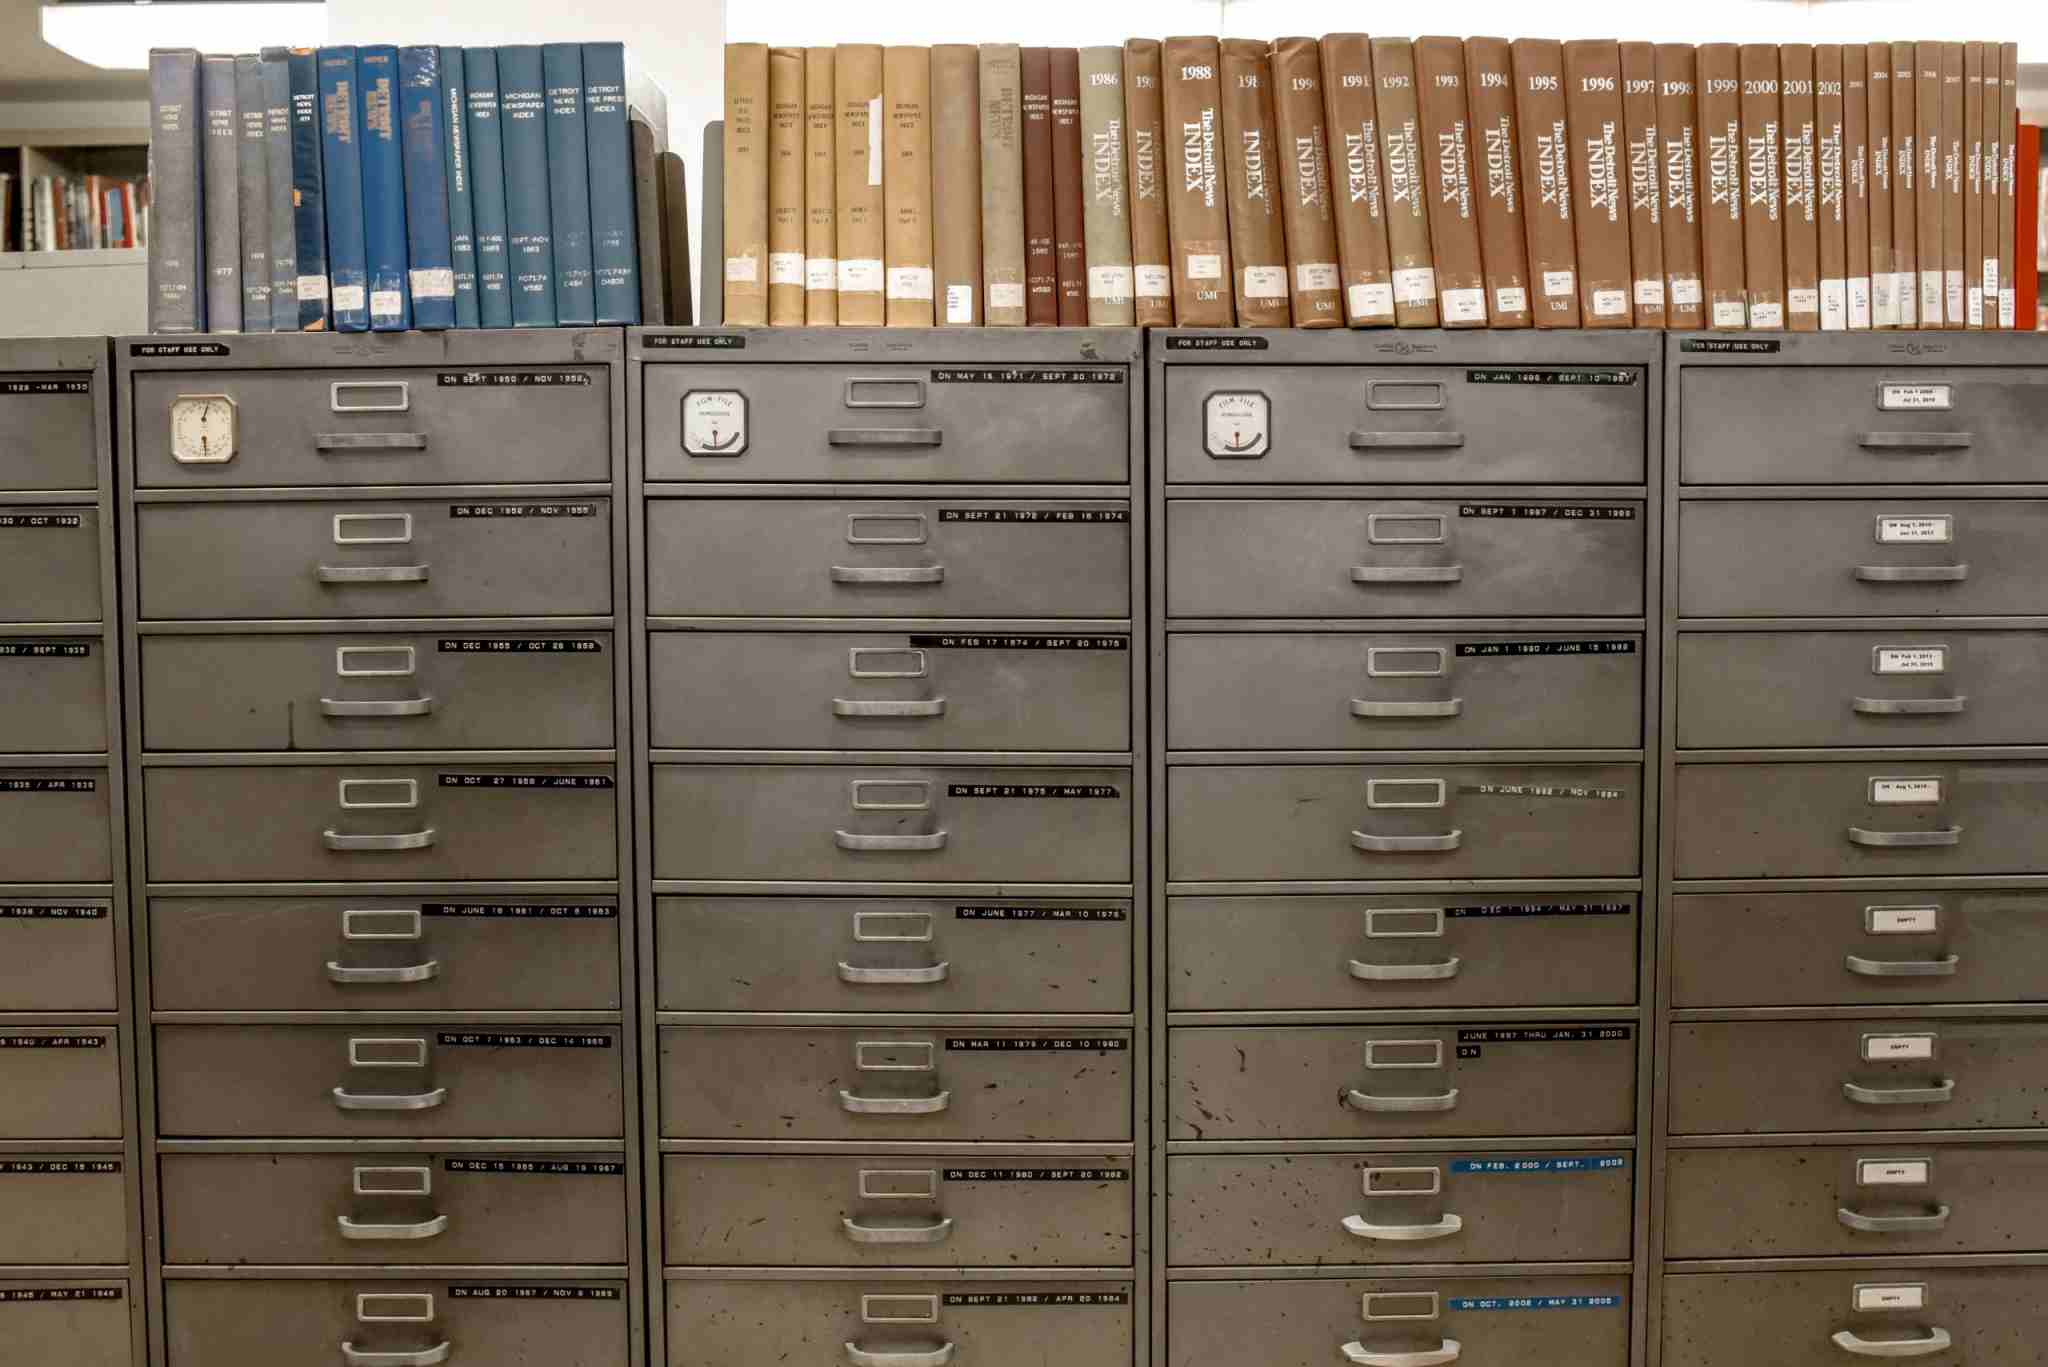 General considerations to provide access to documents shared online